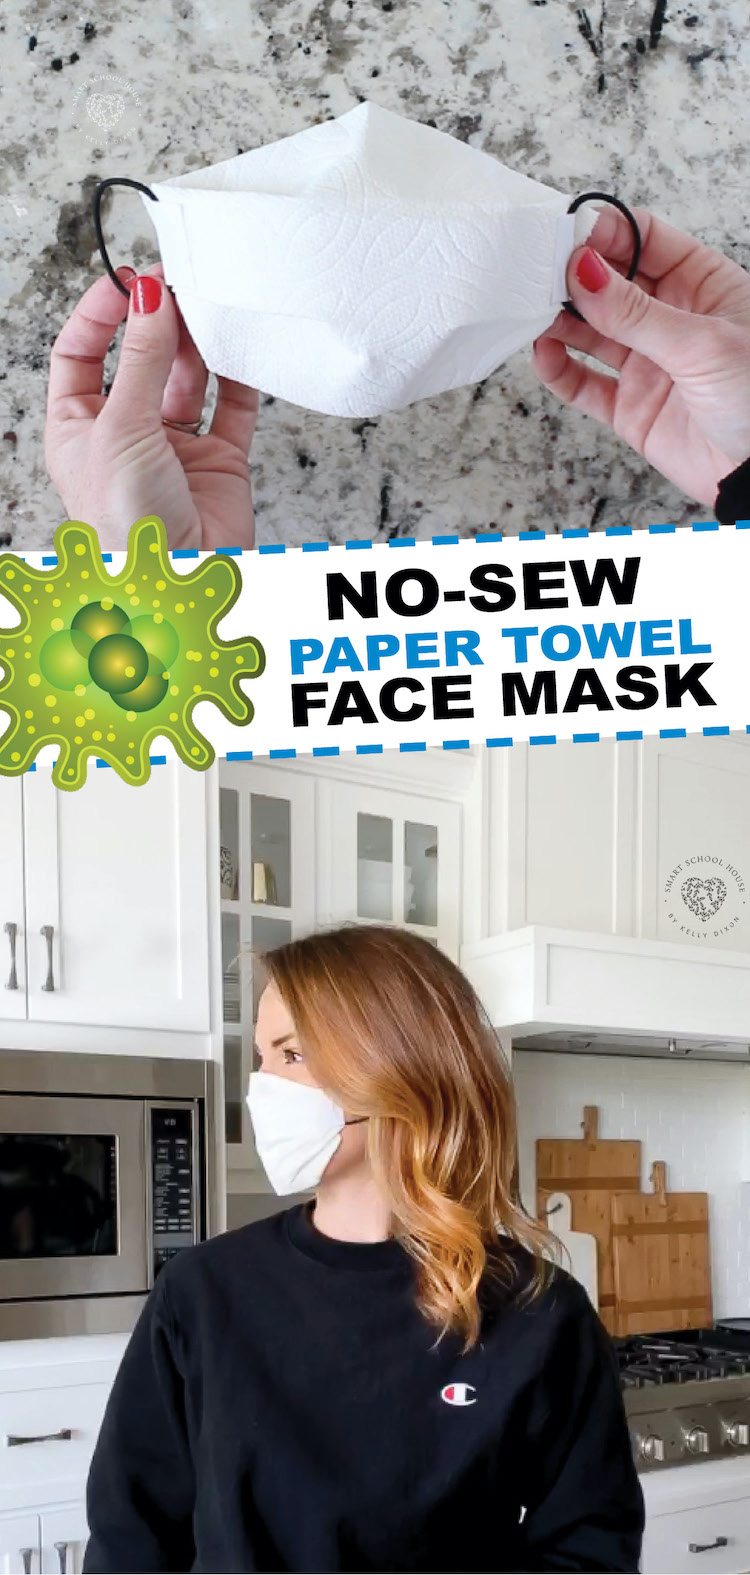 How to make a Structured No-Sew Paper Towel Face Mask - Quick and Easy Tutorial! No sewing required and I'm sure you have the materials to use!